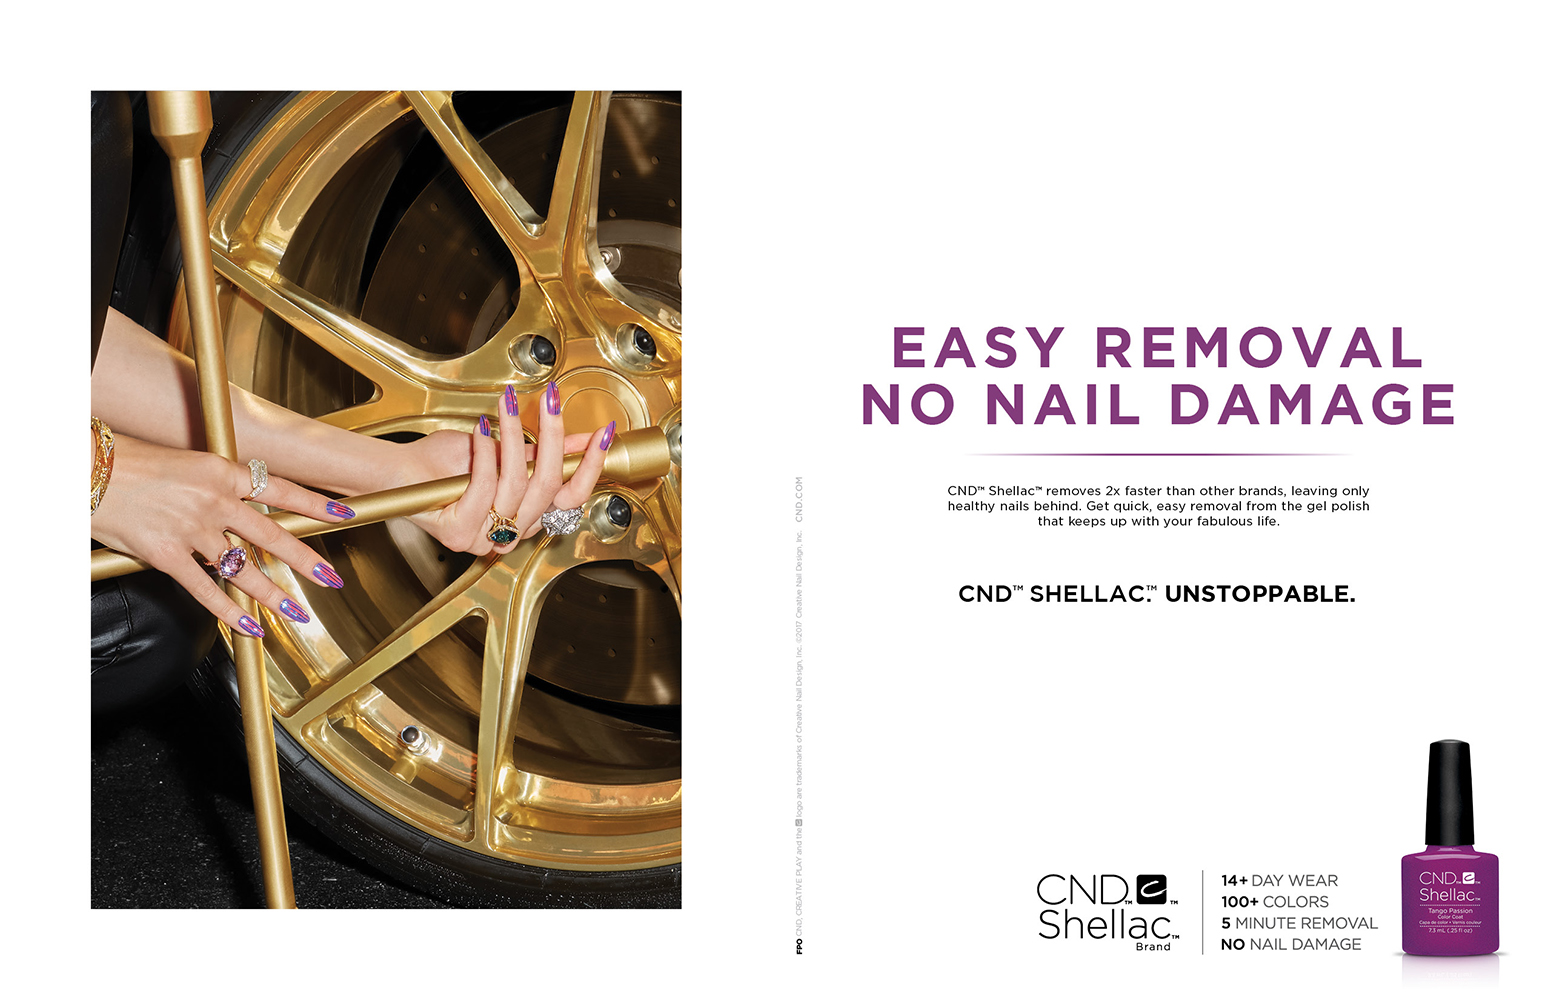 CND_Shellac_Double_Spread_Prints_TIRE1(low_Res).jpg